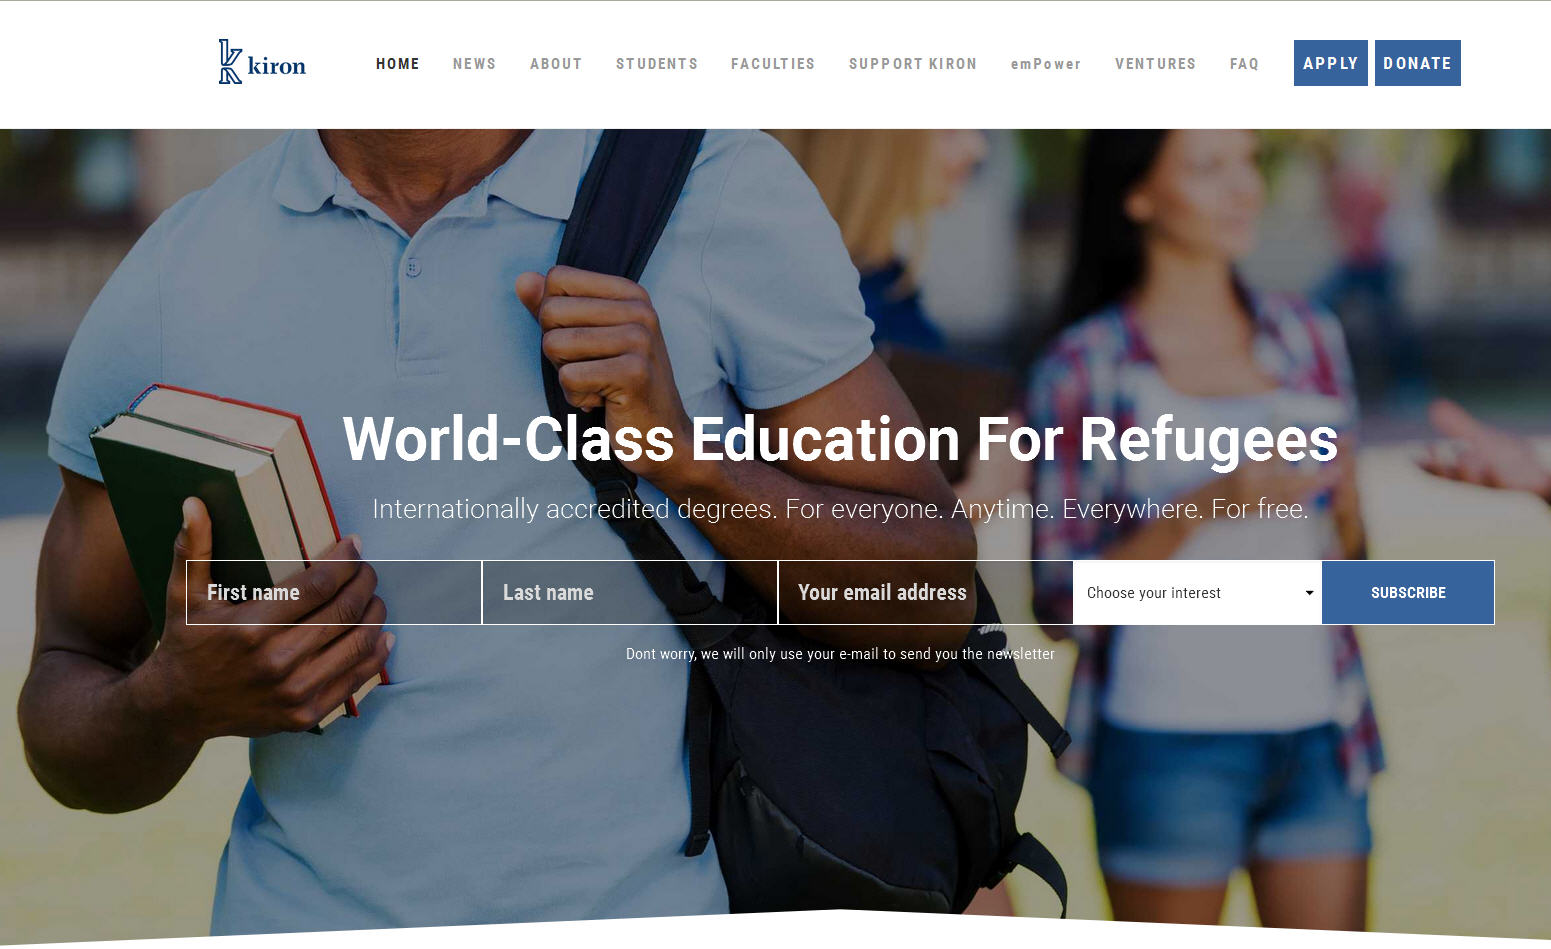 University responses to refugee crisis in Europe